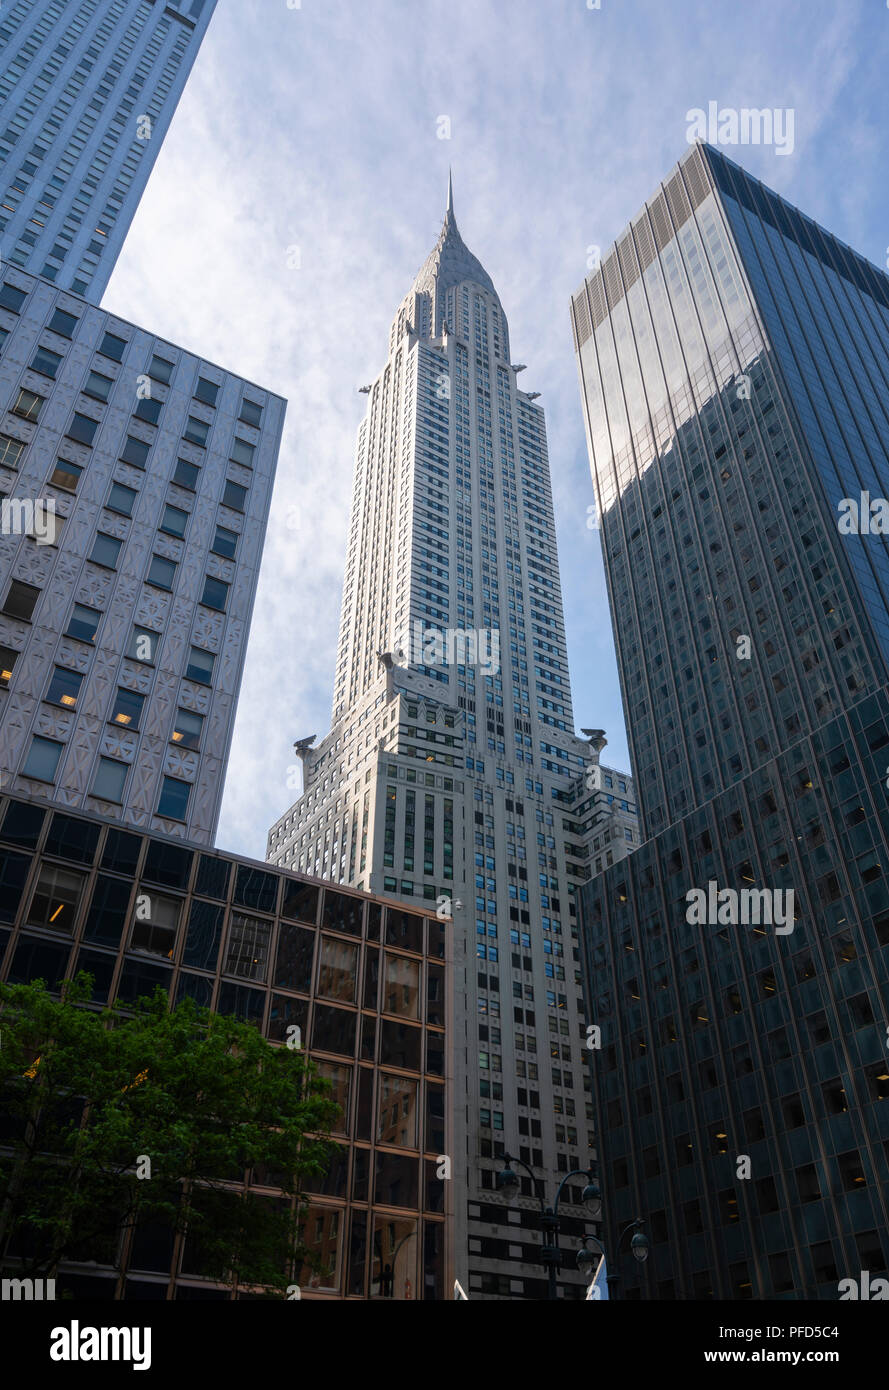 View of Chrysler Building in New York City - Stock Image